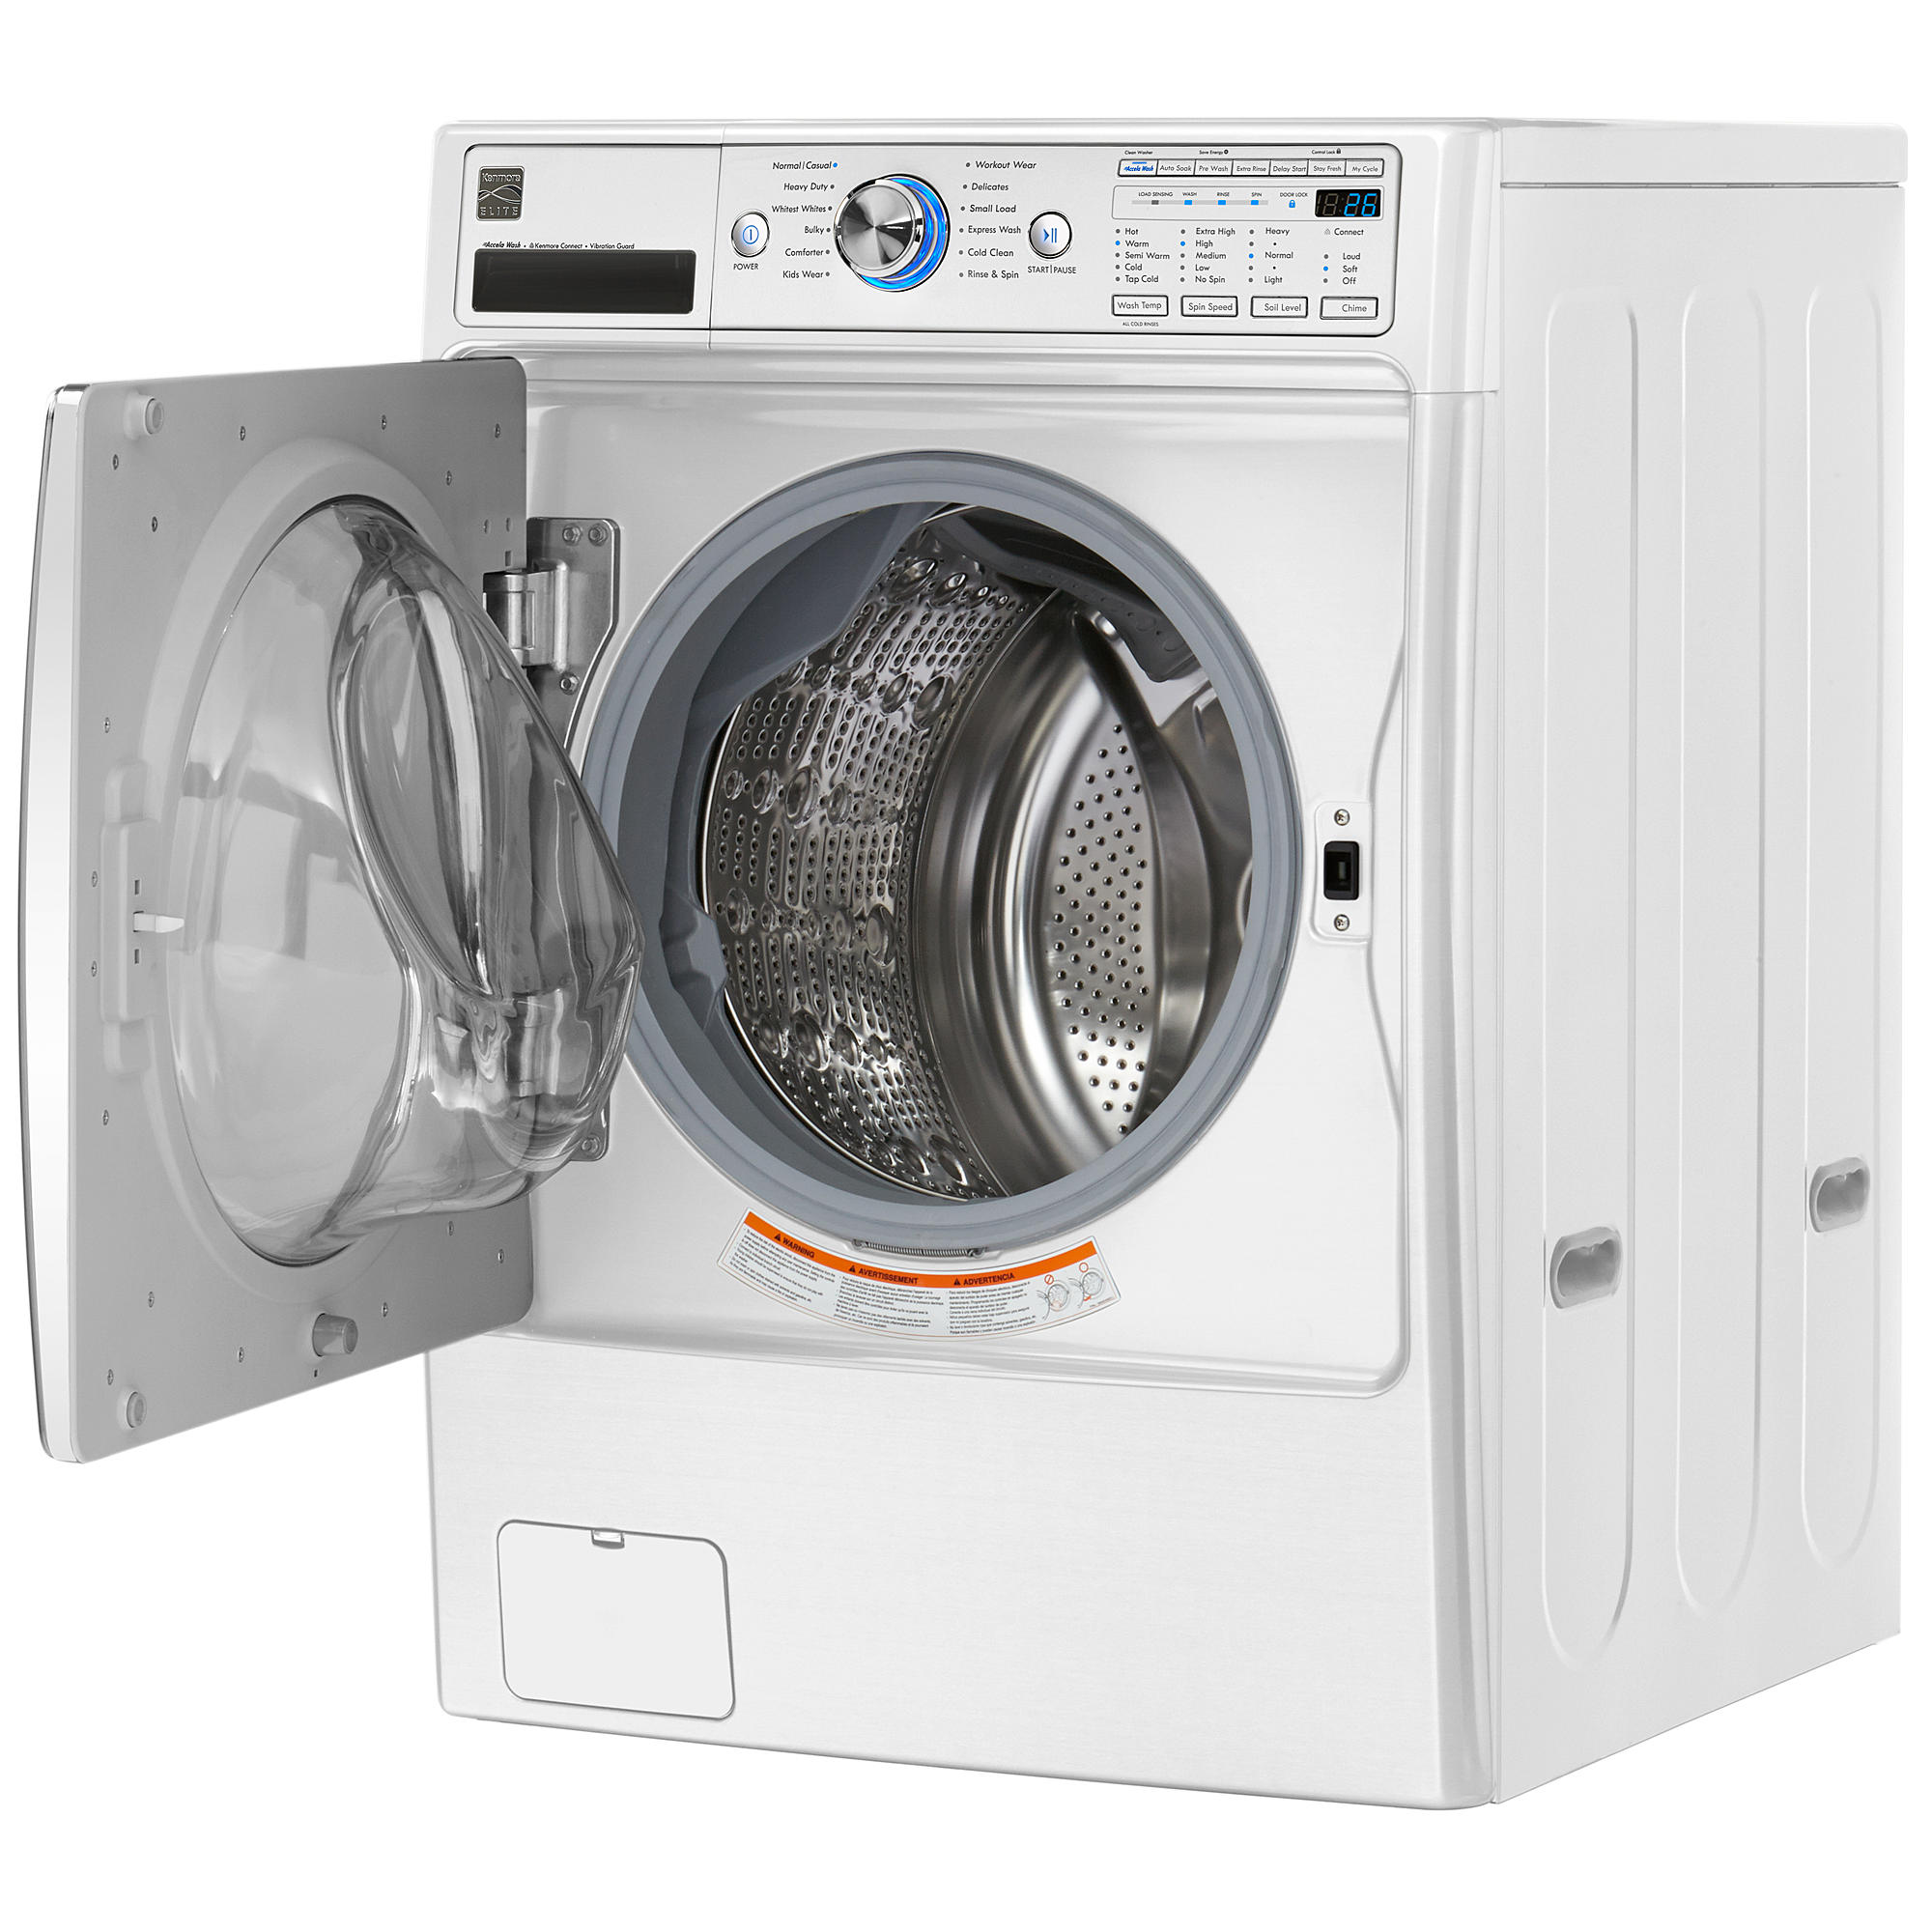 hight resolution of looking for lg model wm2101hw front load washer repair replacement parts